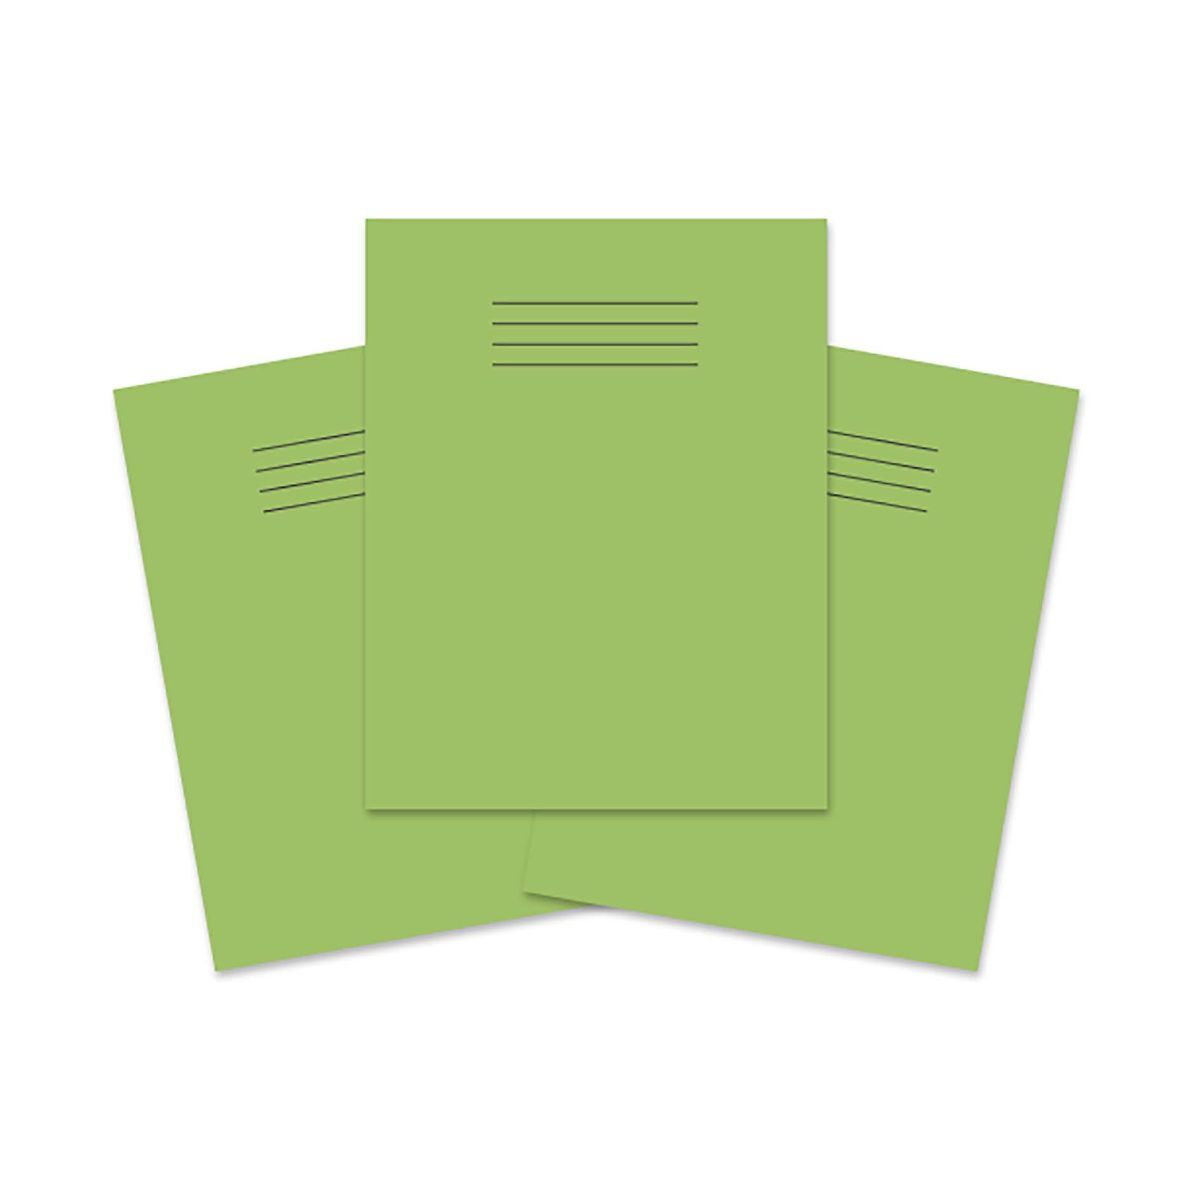 Exercise Book 9 inch x 7 Inch 80 Pages 8mm Ruled and Margin Pack of 100 Light Green